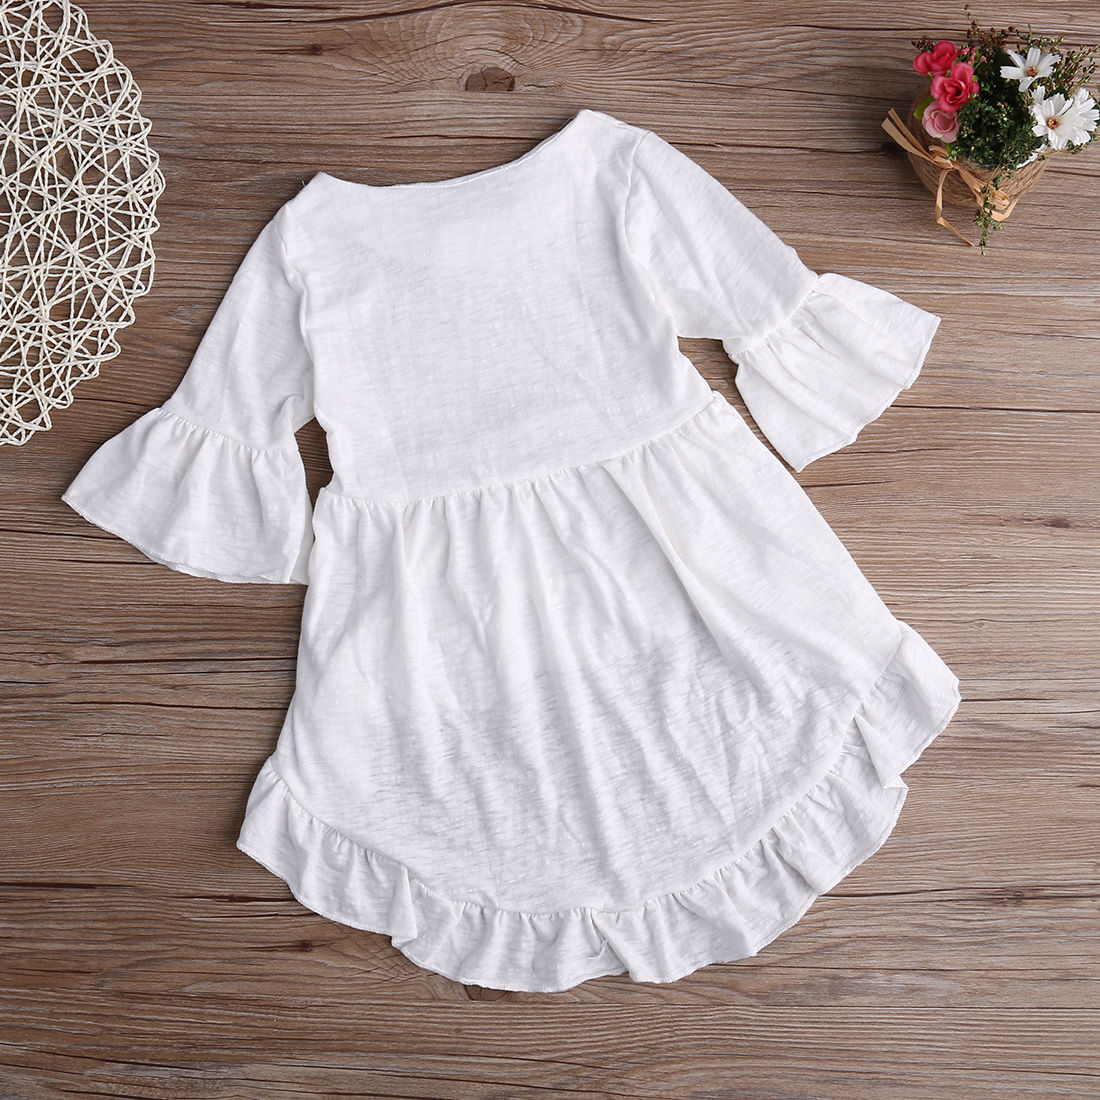 cfa22c696bae Baby Girl White Shirt Dress